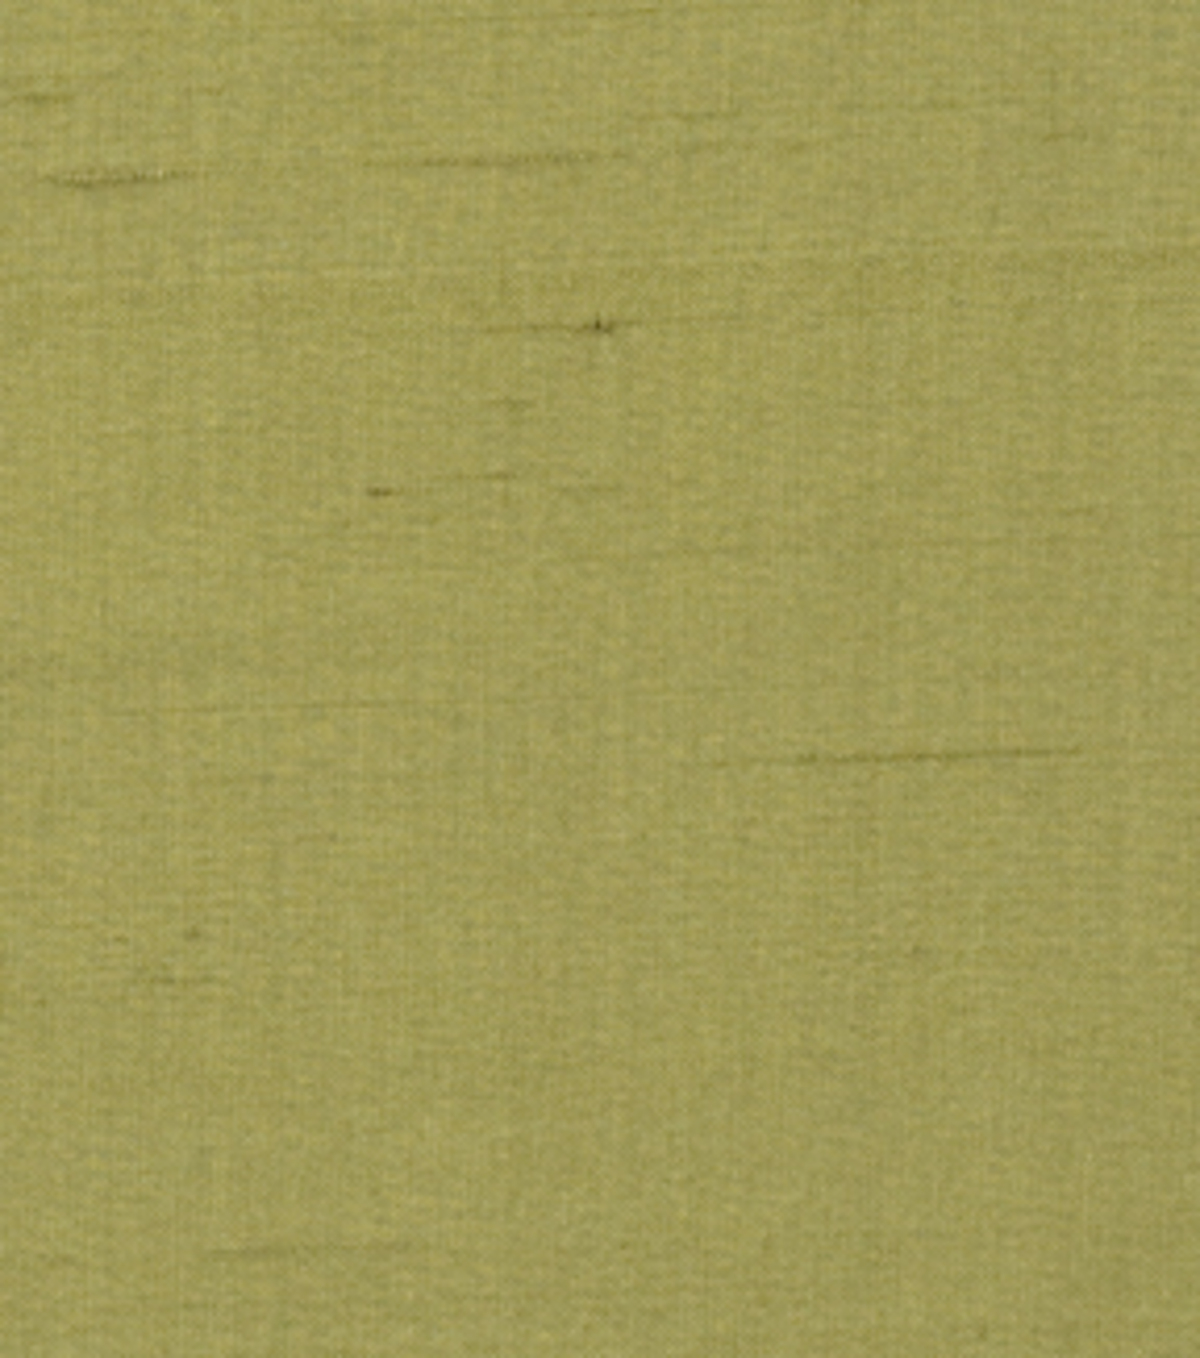 Home Decor 8\u0022x8\u0022 Fabric Swatch-Signature Series Duppioni Silk Caper